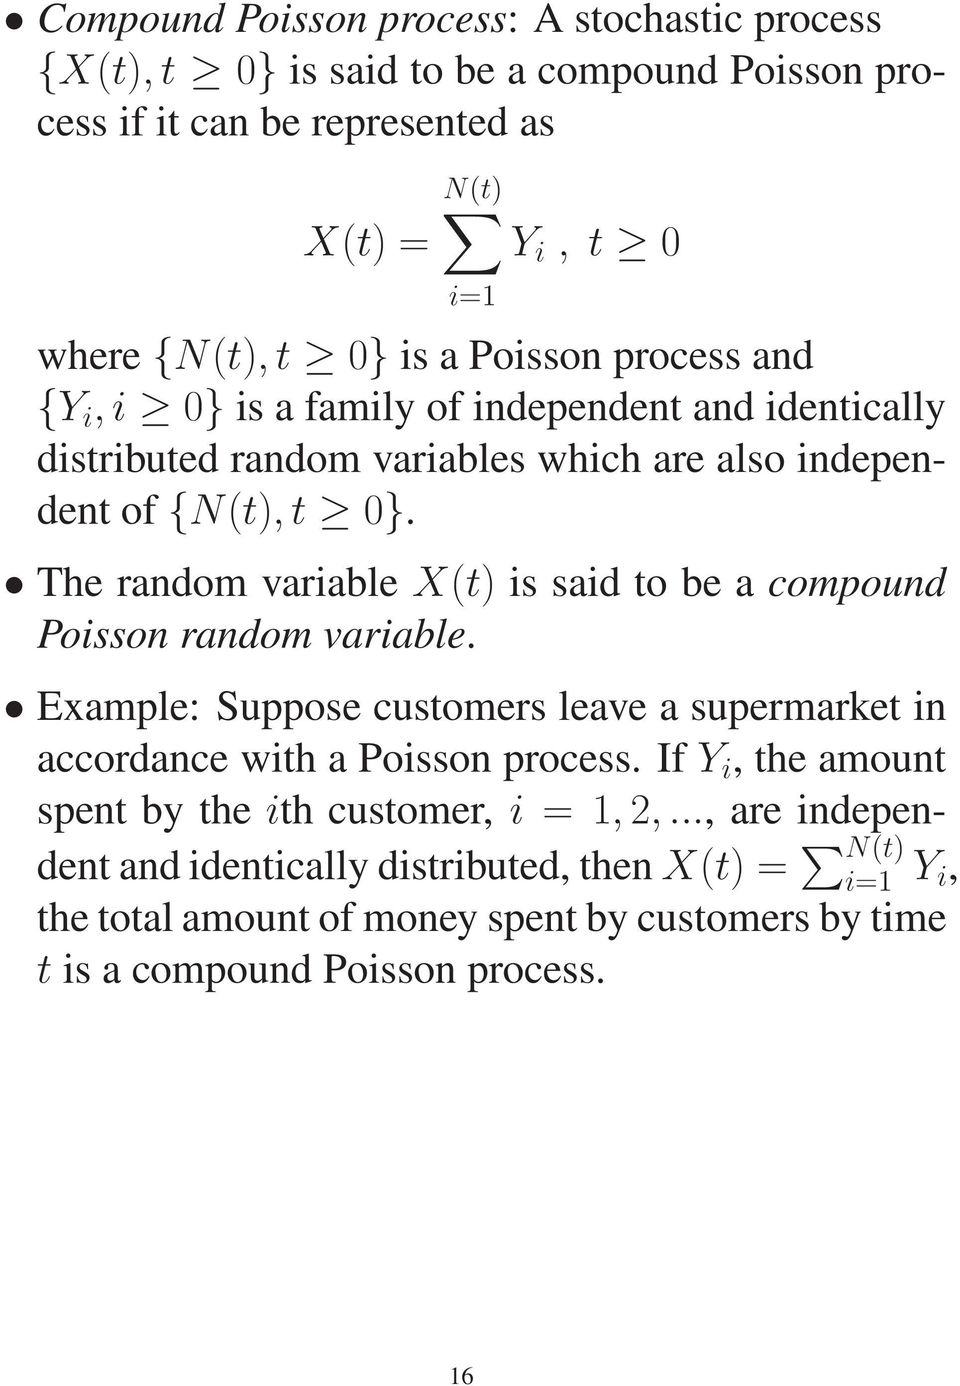 The random variable X(t) is said to be a compound Poisson random variable. Example: Suppose customers leave a supermarket in accordance with a Poisson process.